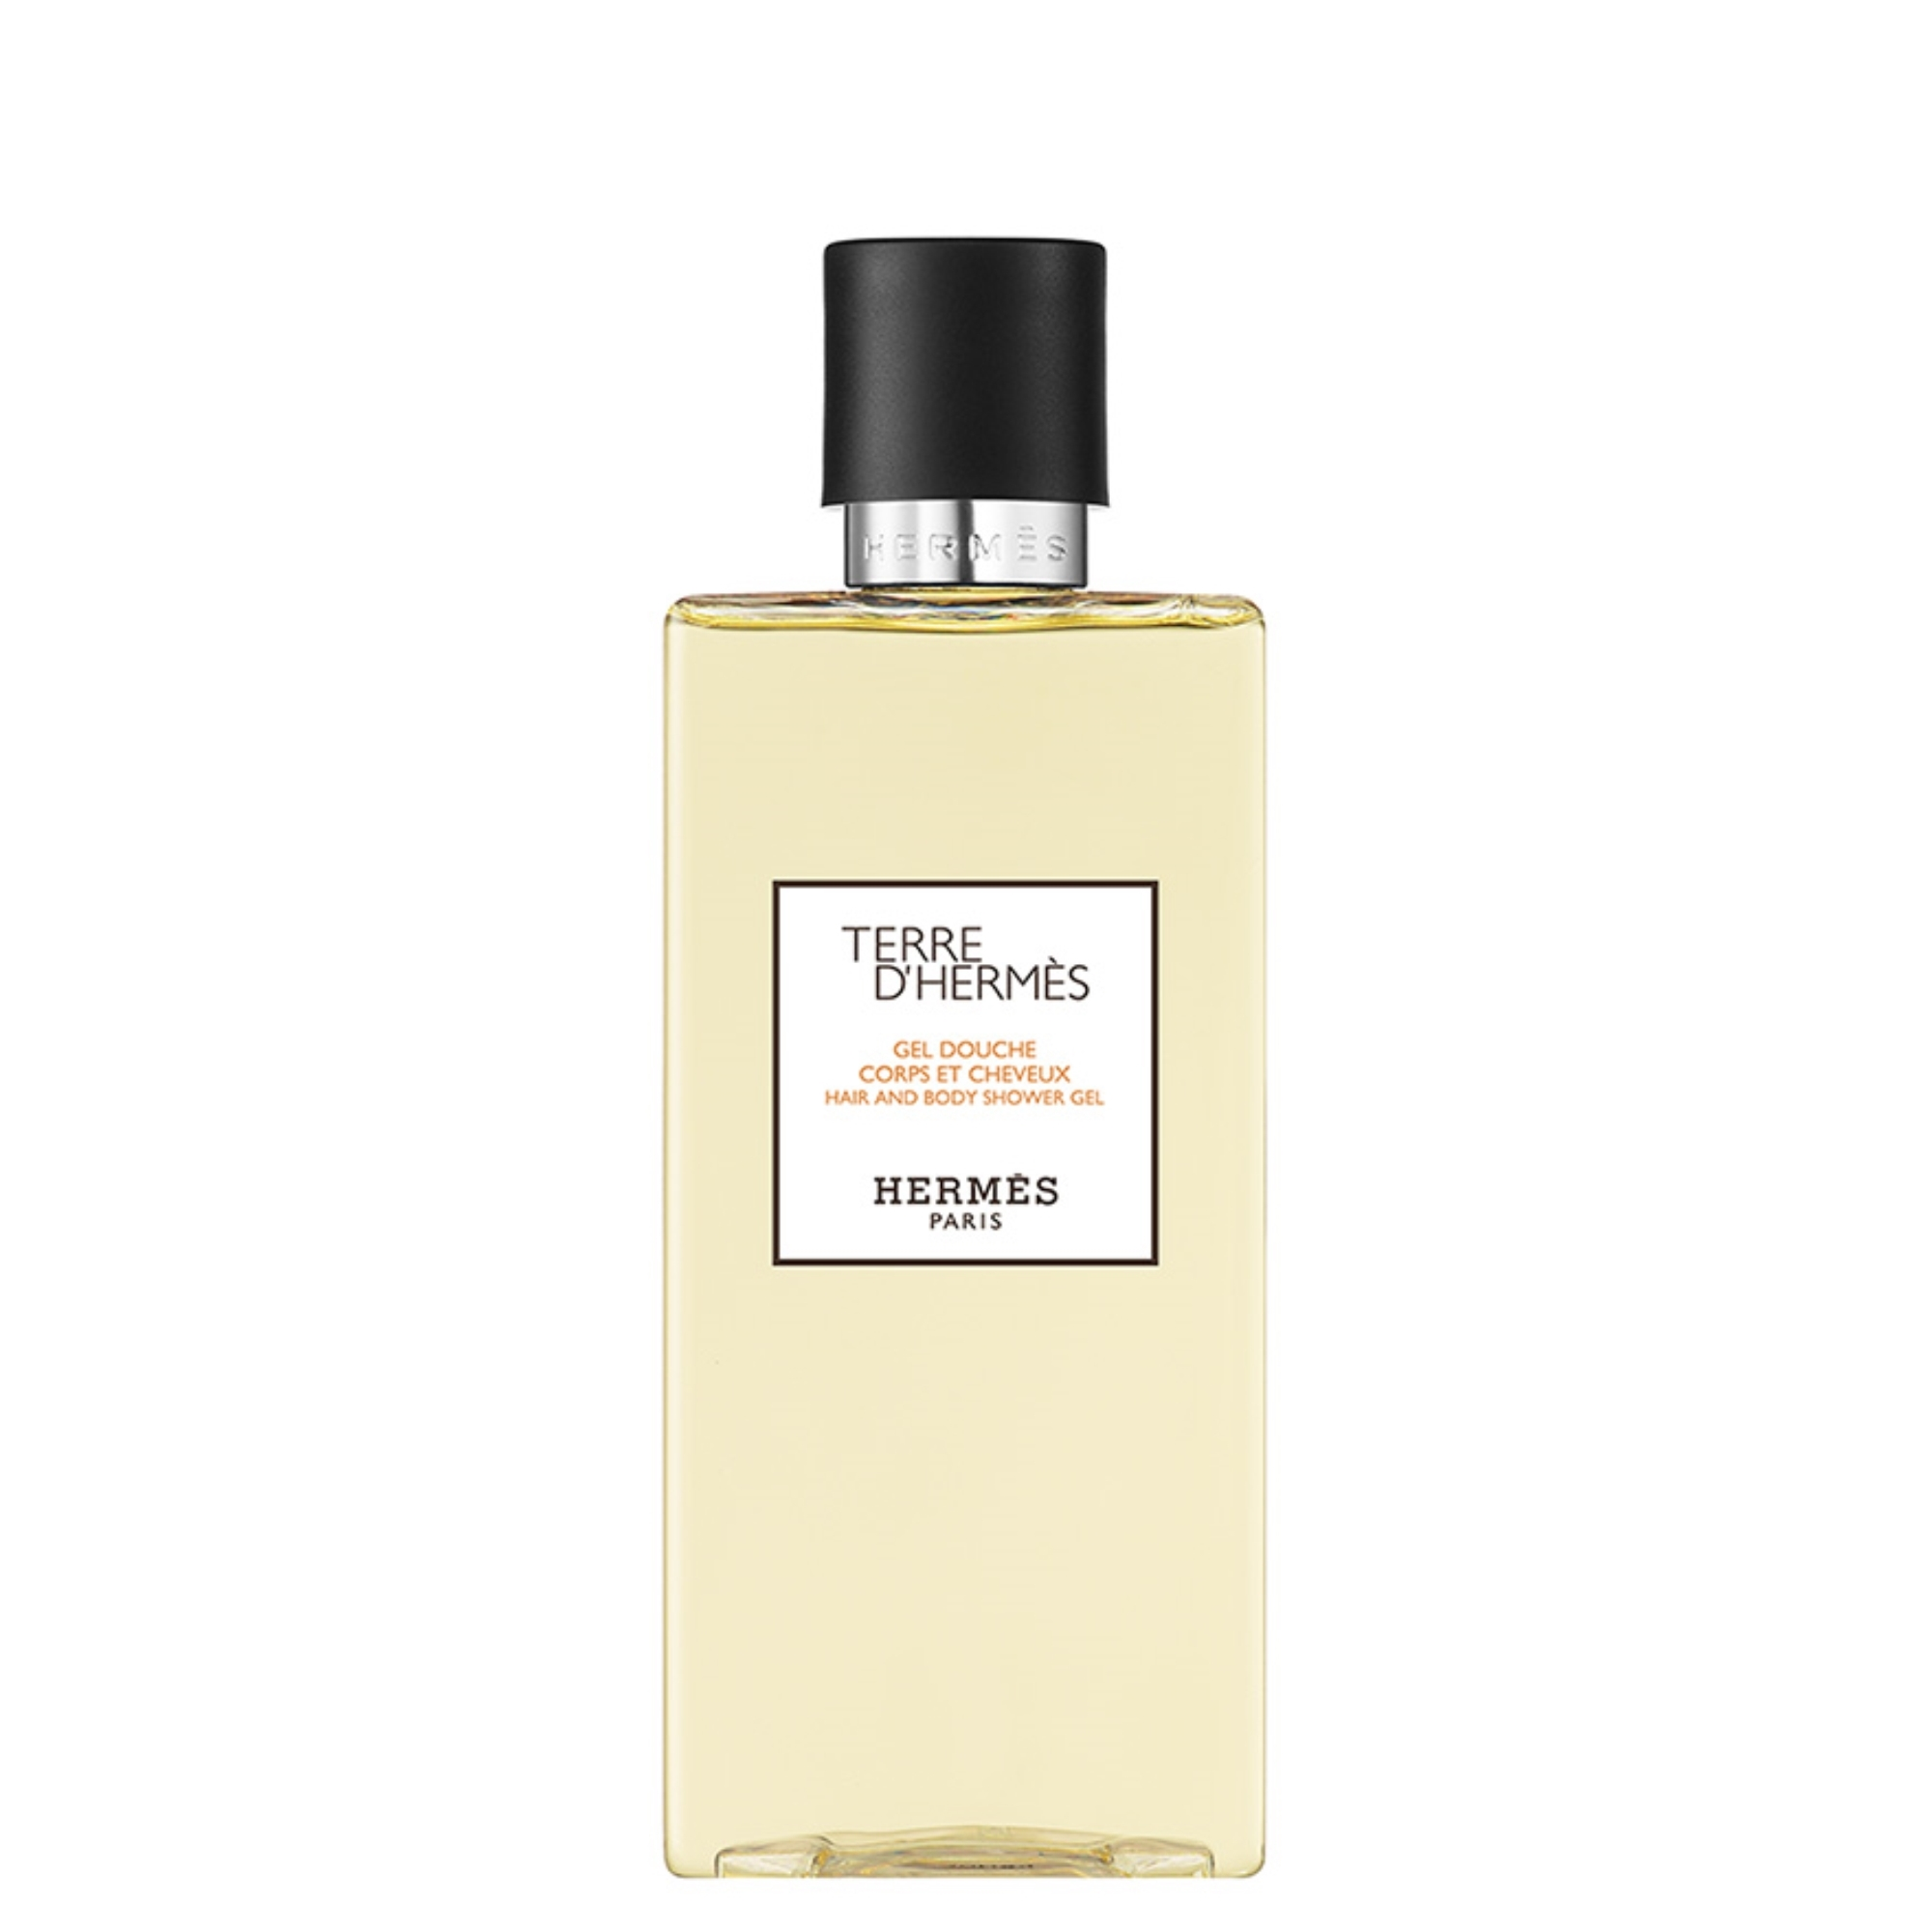 Terre d'Hermès Hair and Body Shower Gel 200 ml